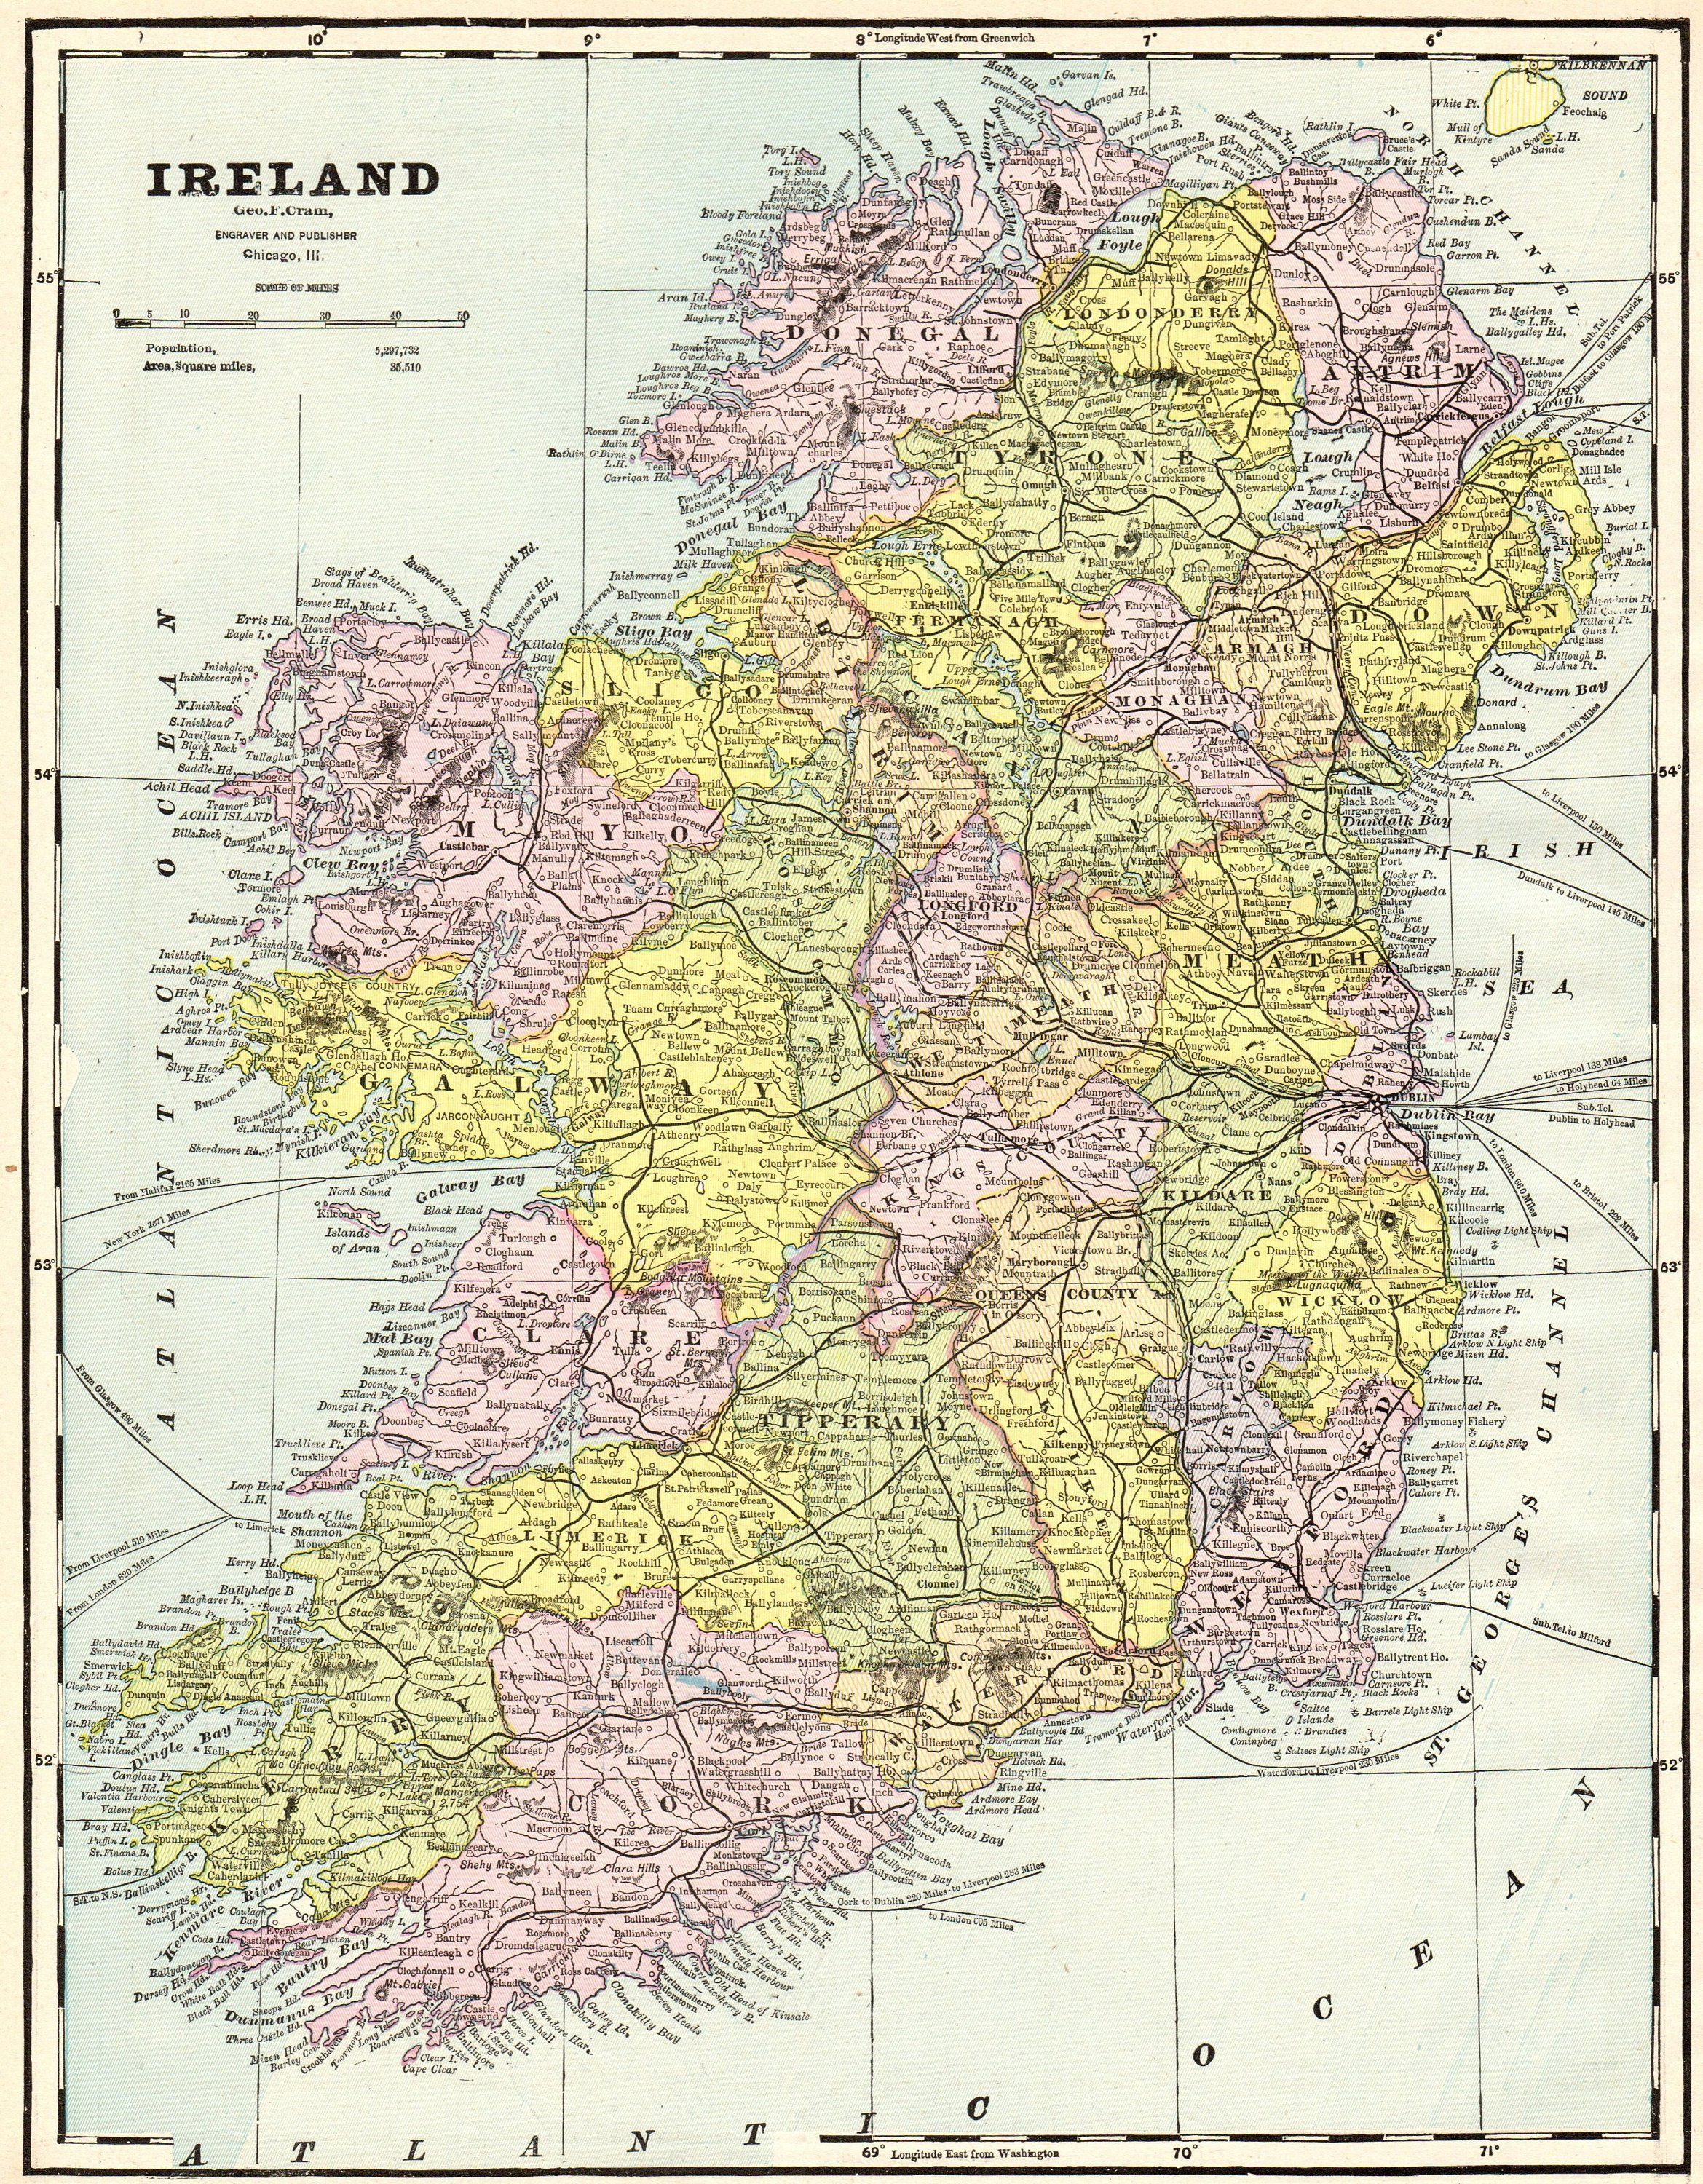 1892 Antique IRELAND Map Vintage Map of Ireland Gallery Wall Art ...